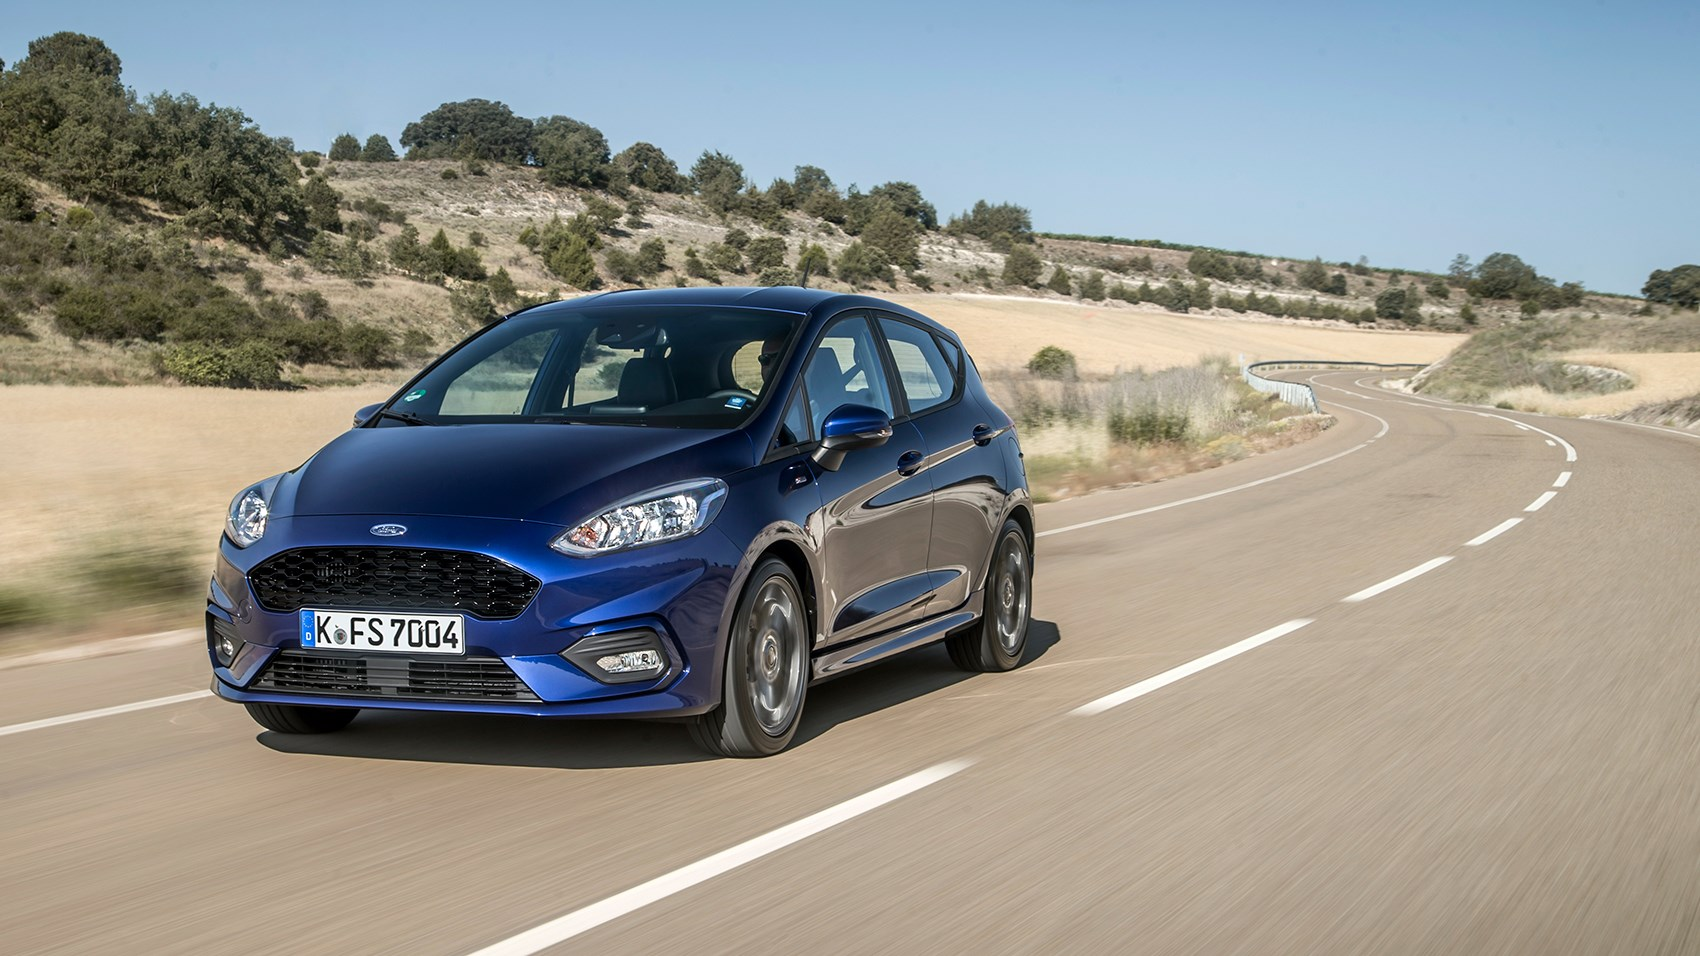 FORD Fiesta Used Engines